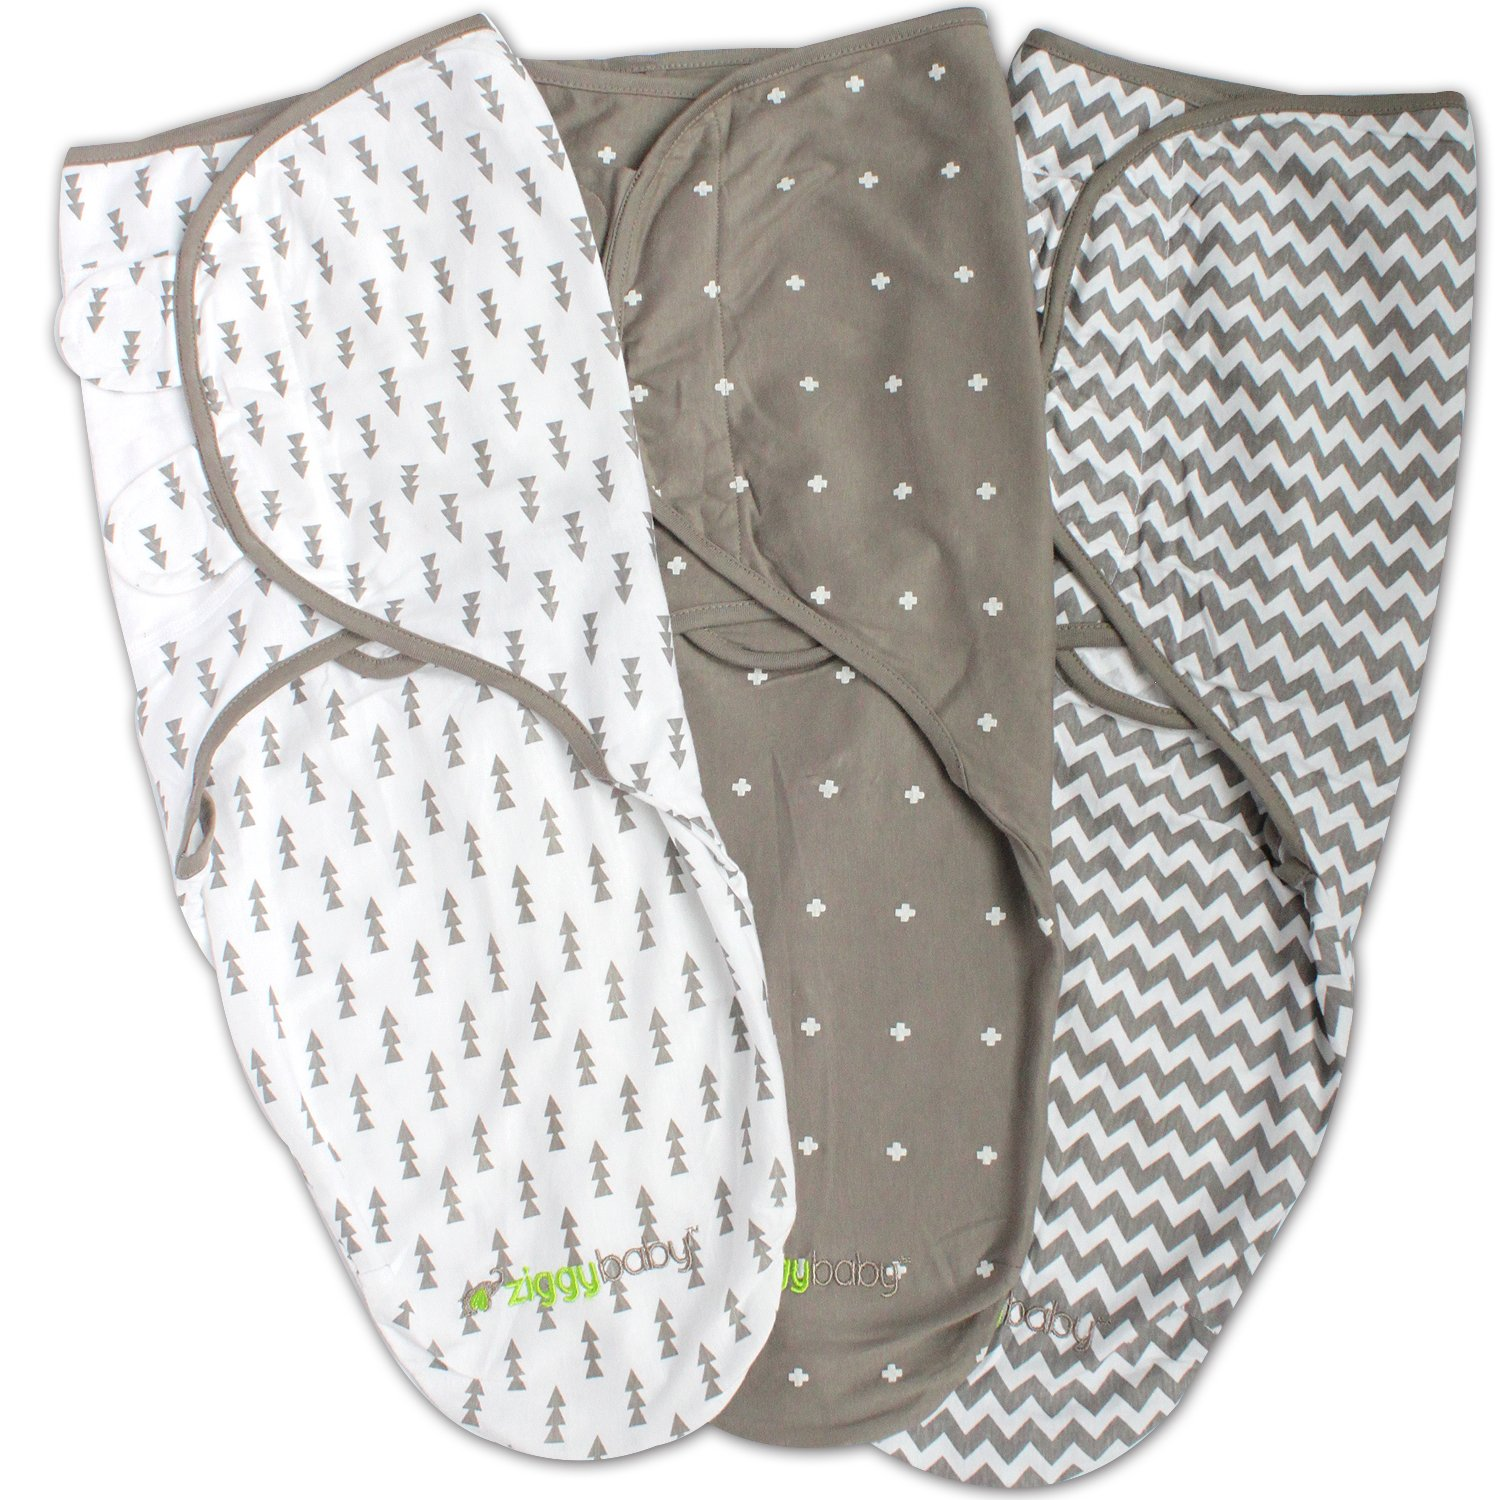 Swaddle Blanket, Adjustable Infant Baby Wrap Set by Ziggy Baby, 3 Pack Soft Cotton in Grey by Ziggy Baby